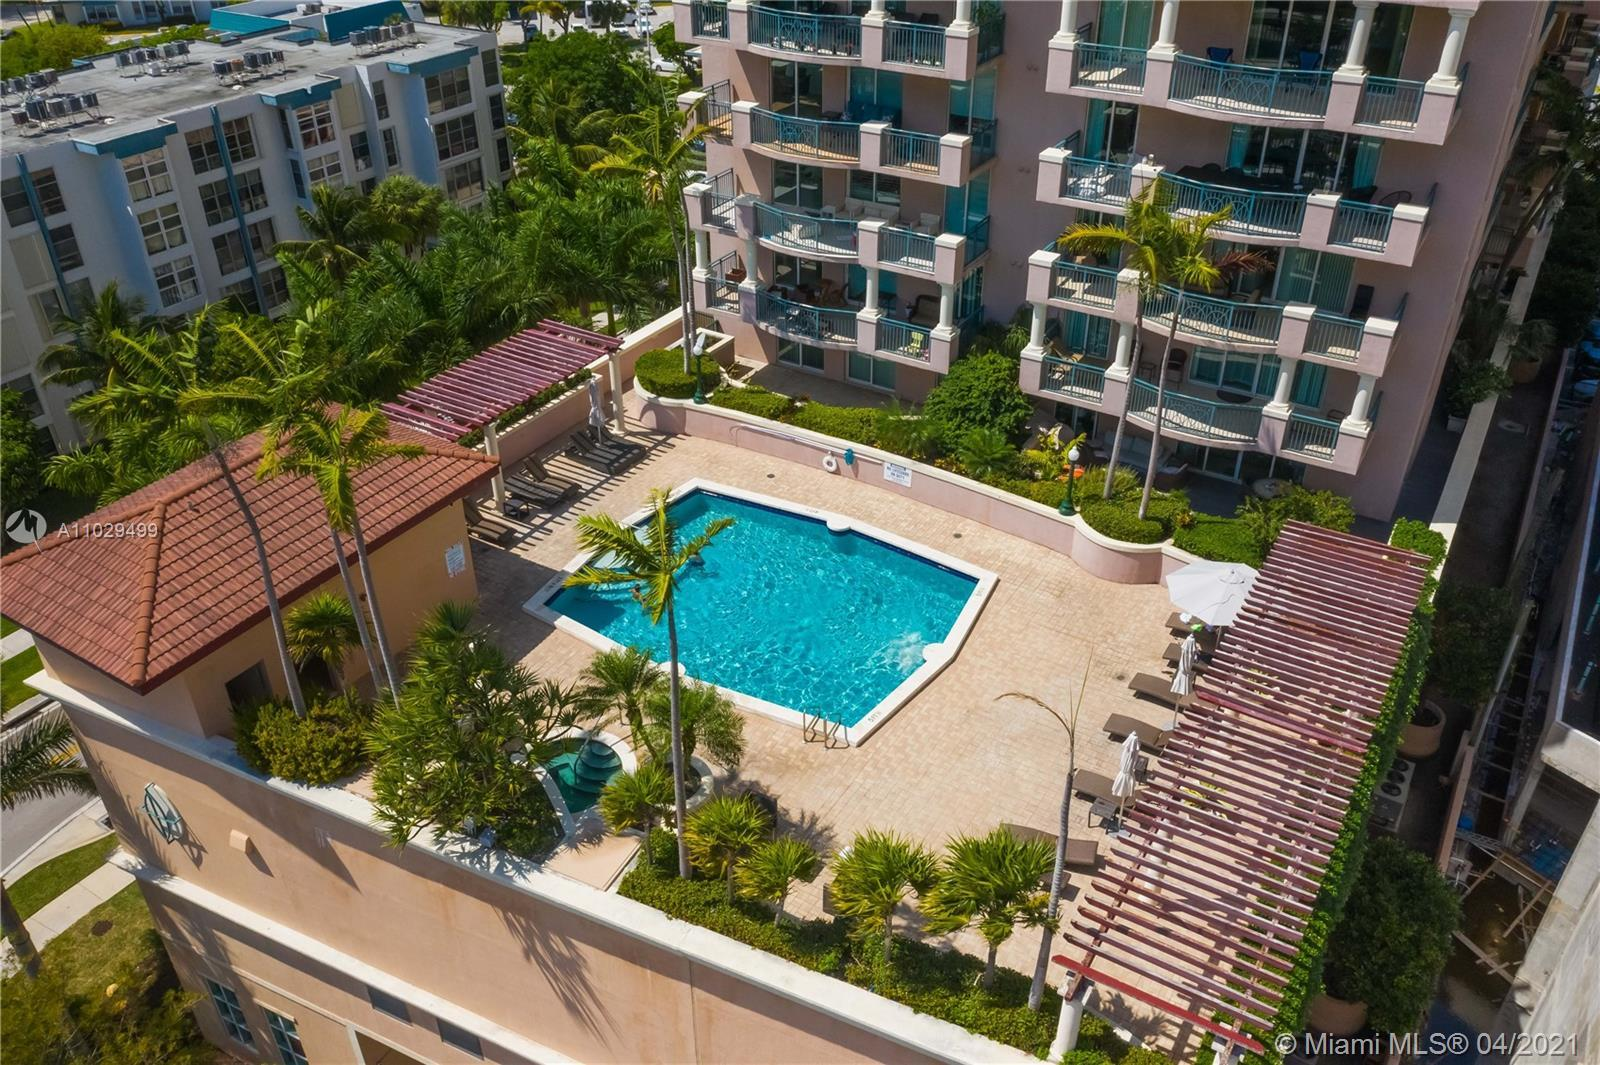 Resort-style residence with amazing amenities! Relax by the sunny pool deck, soak on the hot tub and